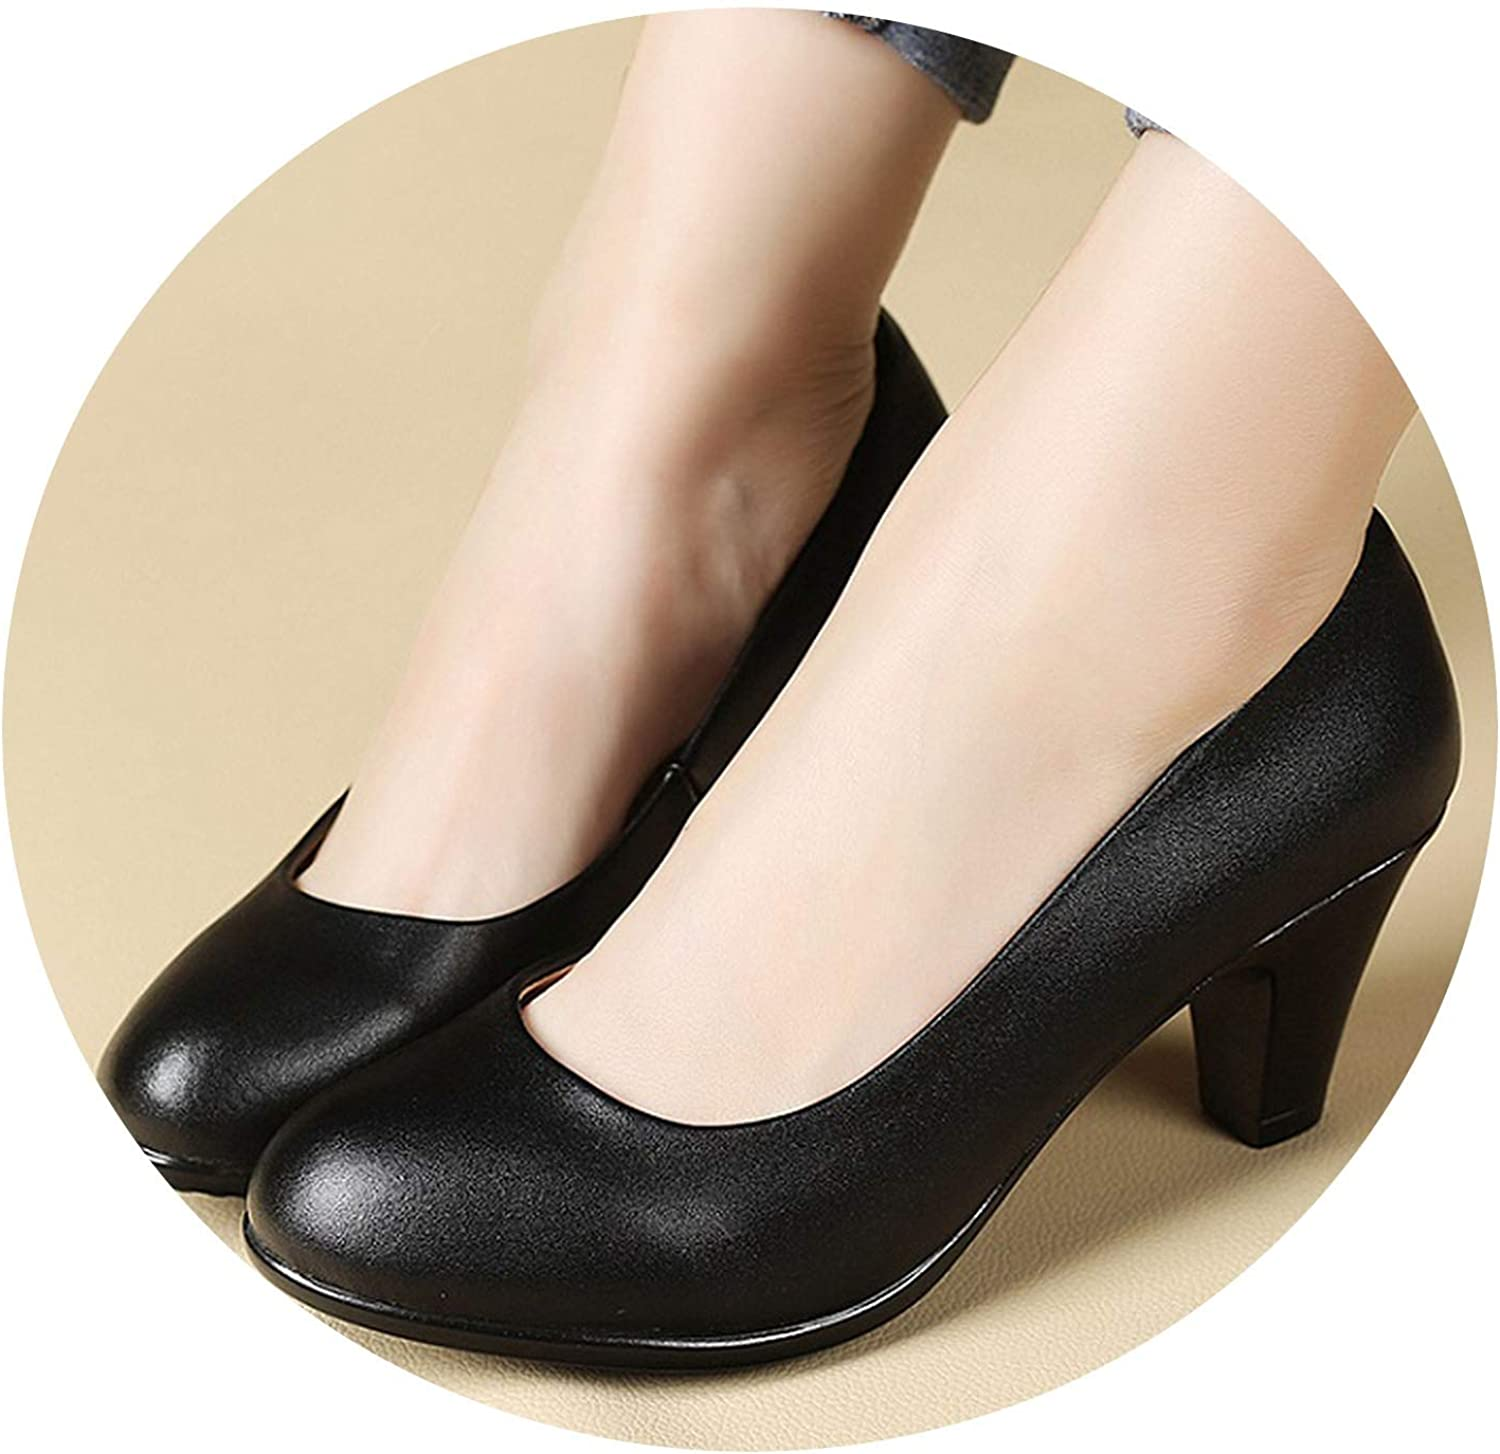 Awesome-experience Spring Autumn New Black Leather shoes Sexy Comfortable Women Work High-Heeled shoes